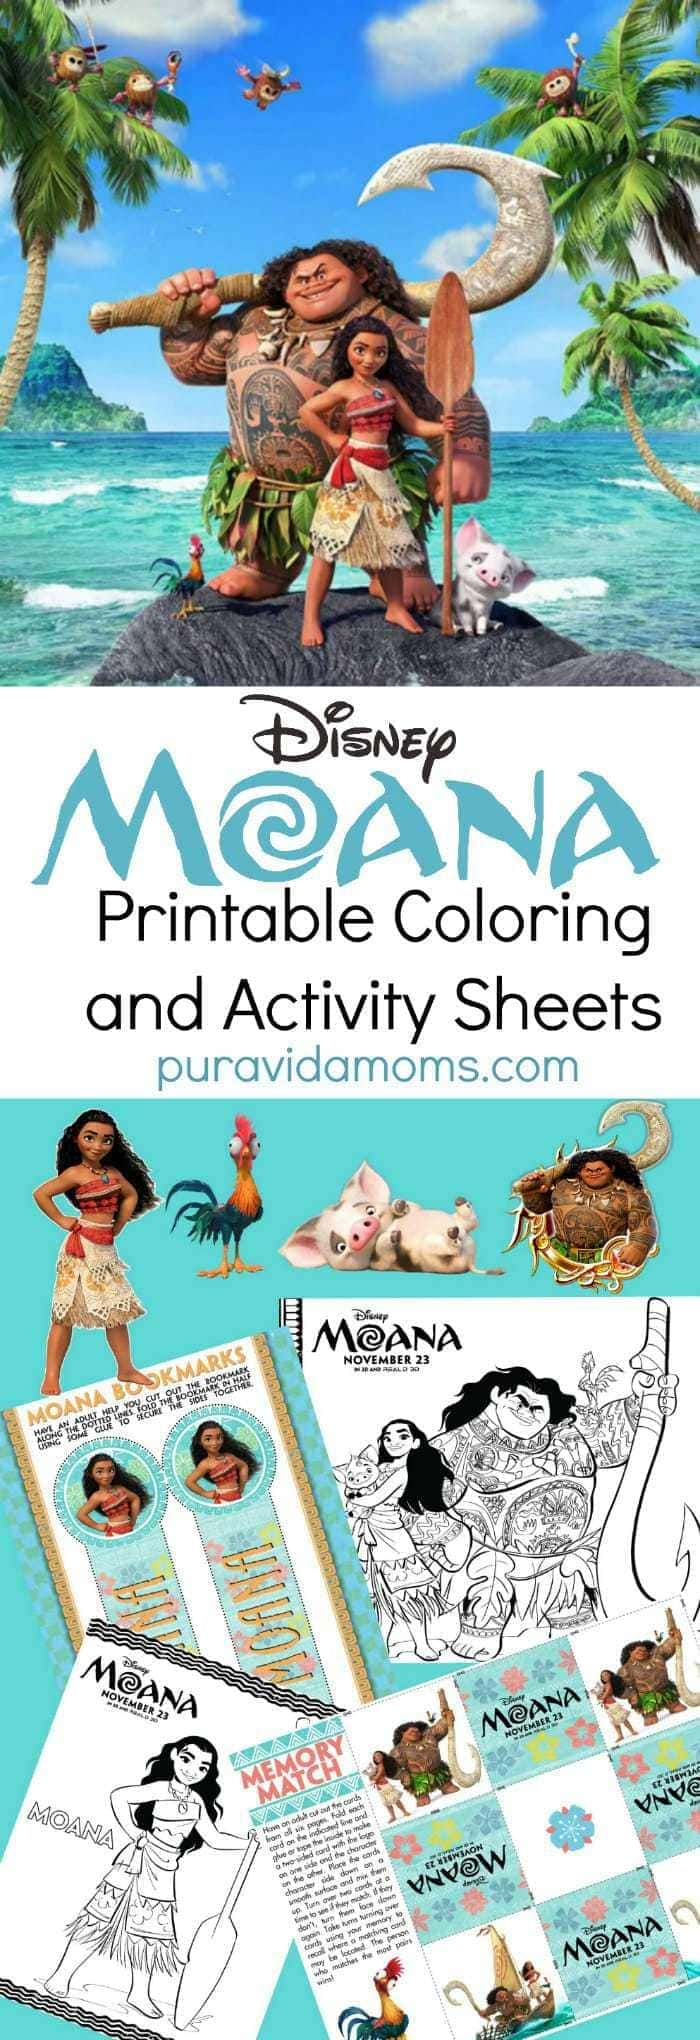 Moana Printable Coloring Sheets And Activity Pages Pura